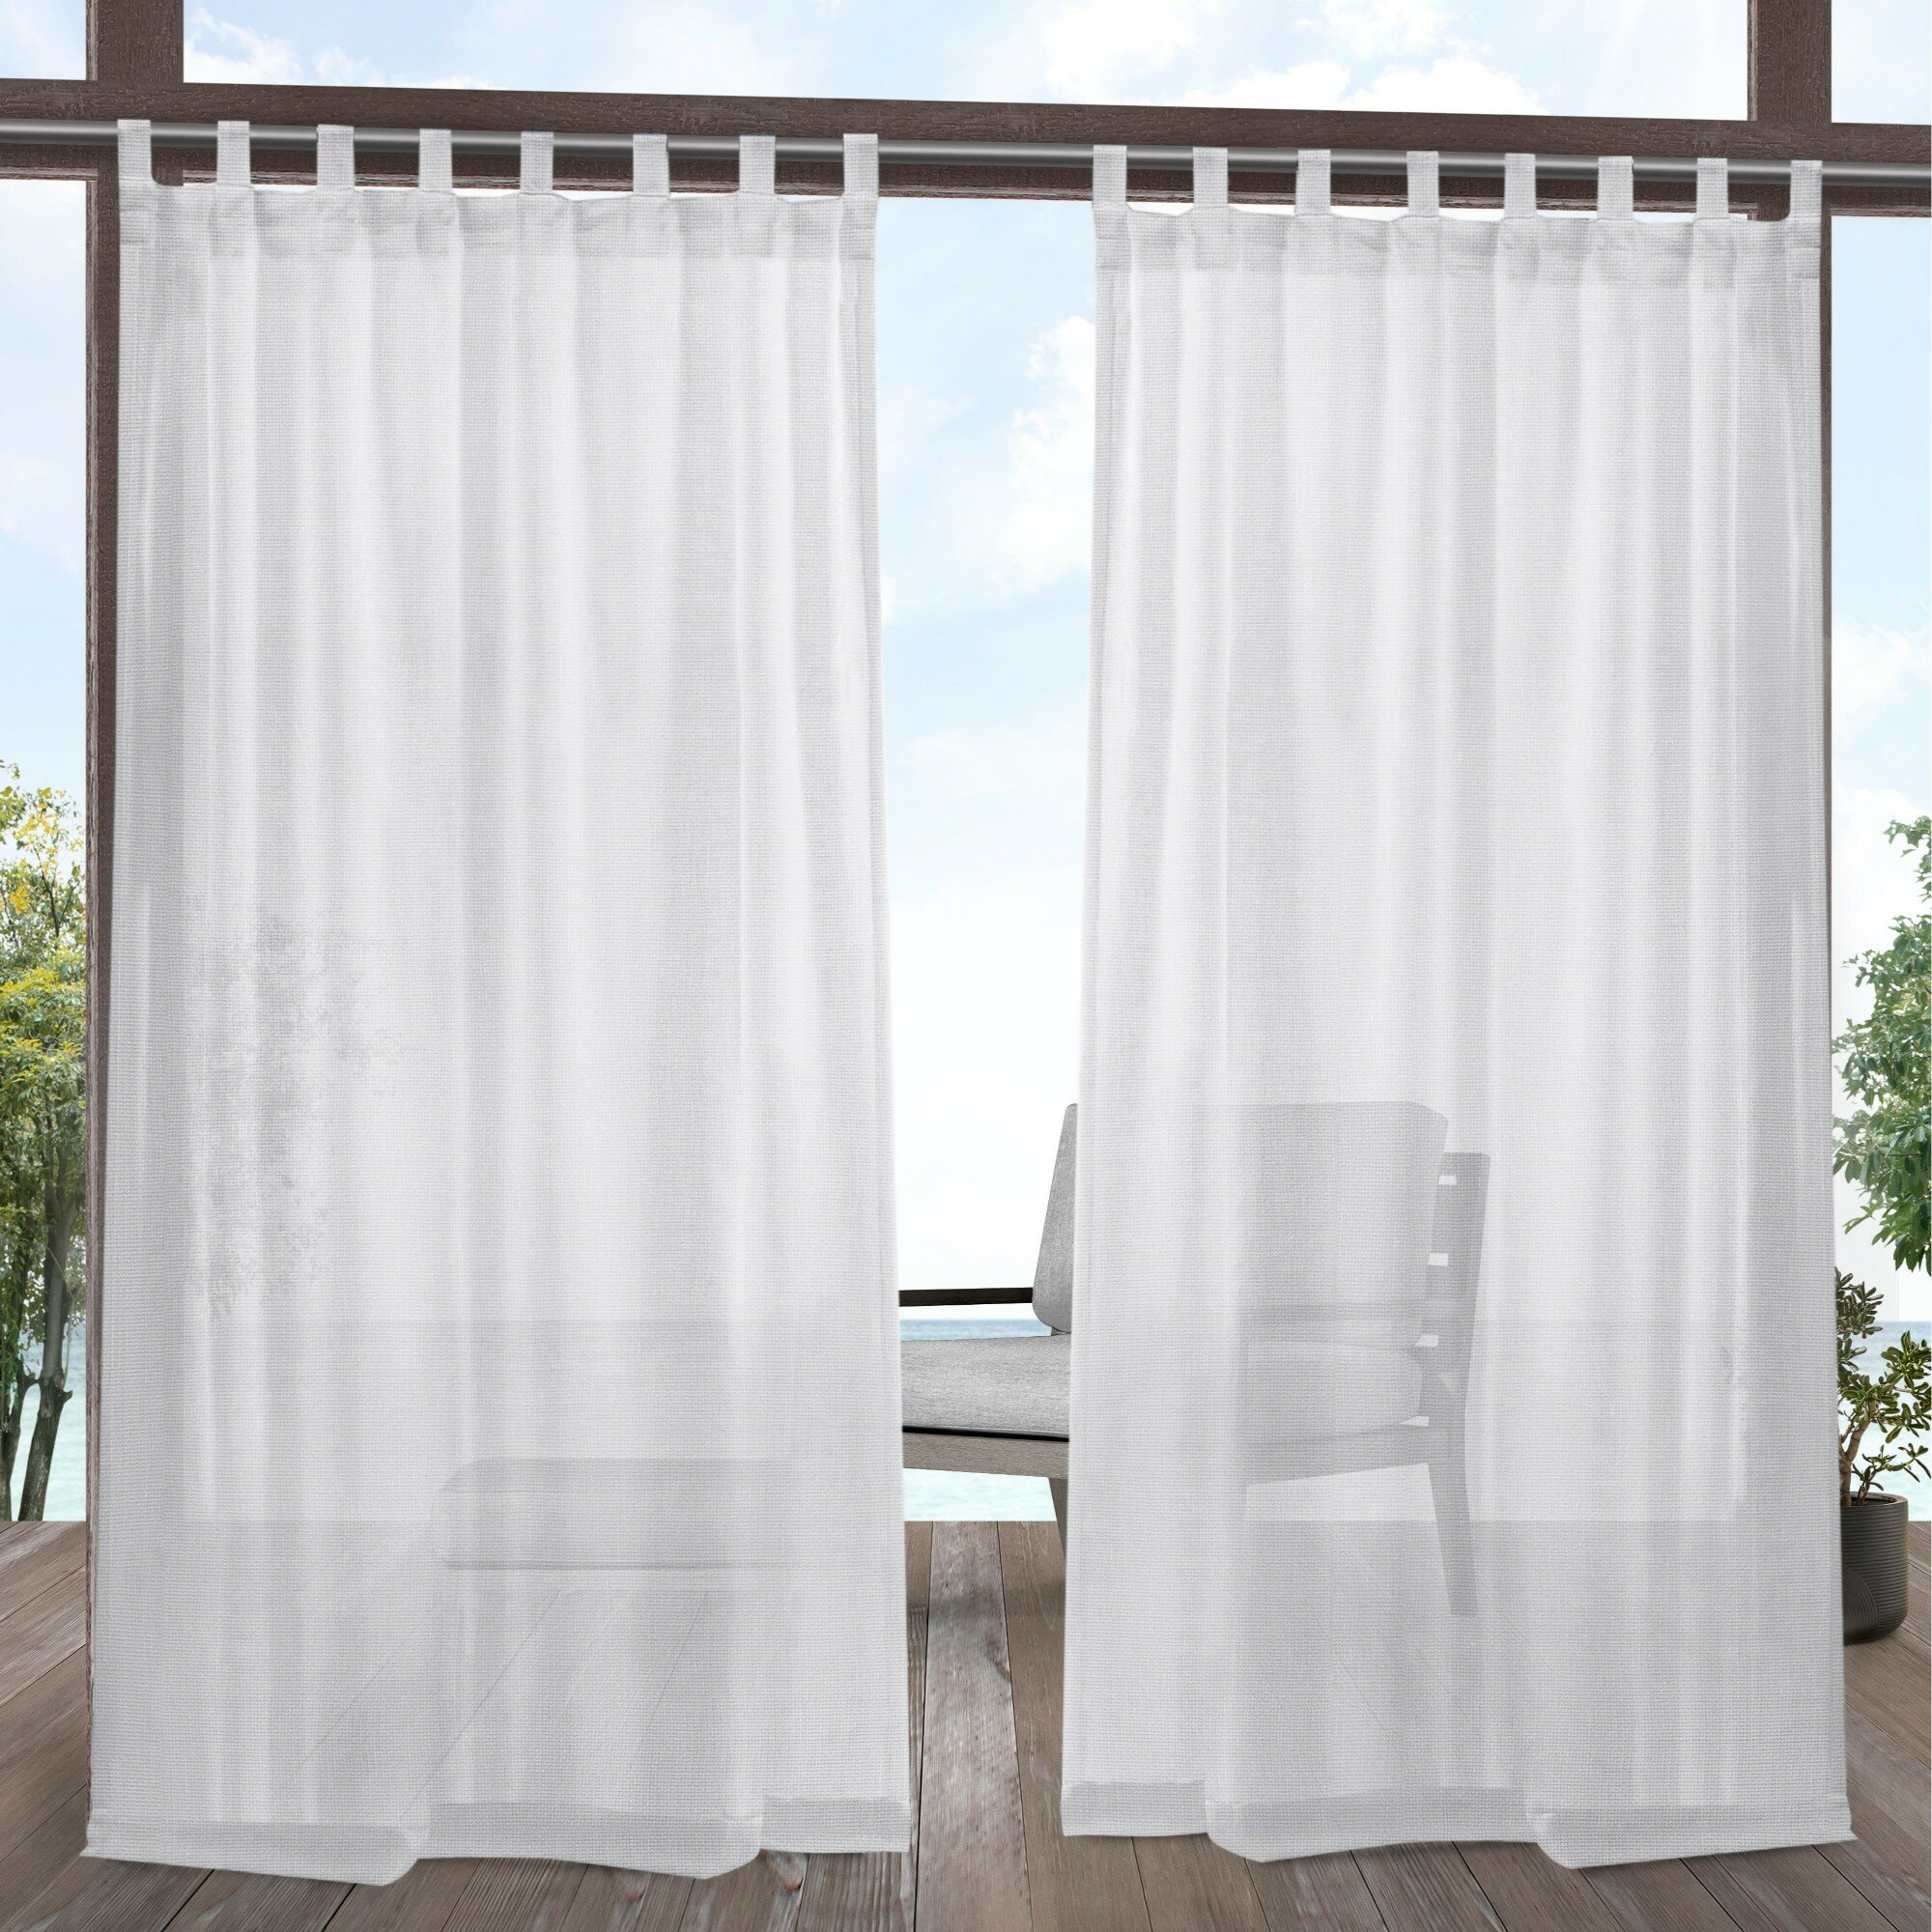 Curtains Blinds Multi Coloured Star Tab Top Blackout Curtains 72s Home Furniture Diy Lugecook Com Br